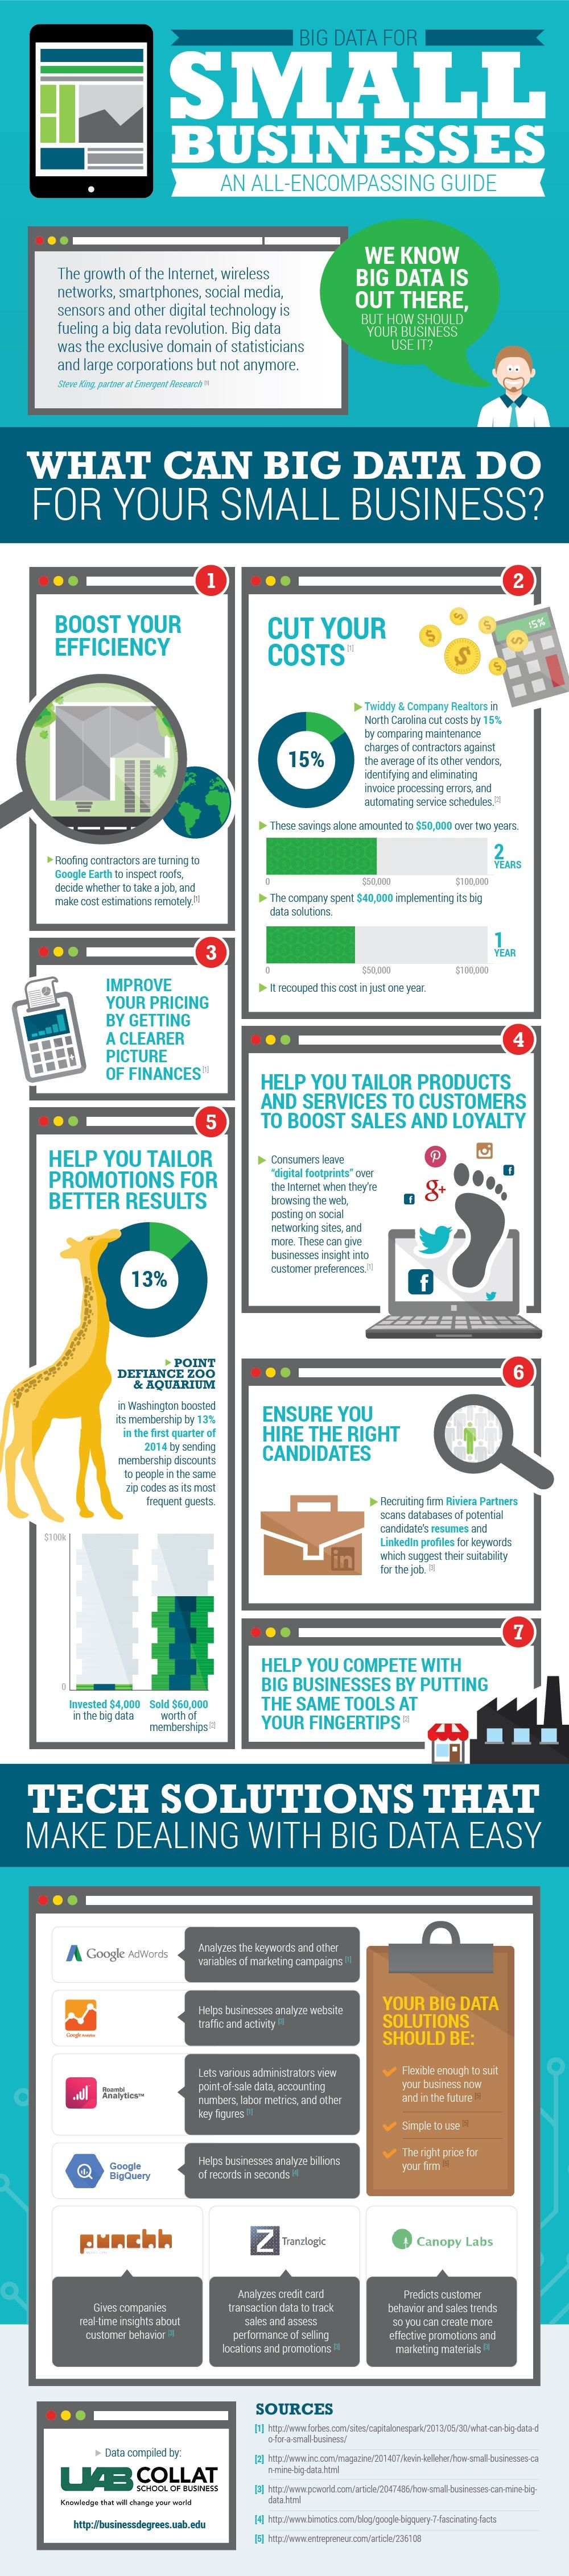 Big Data for Small Business #infographic